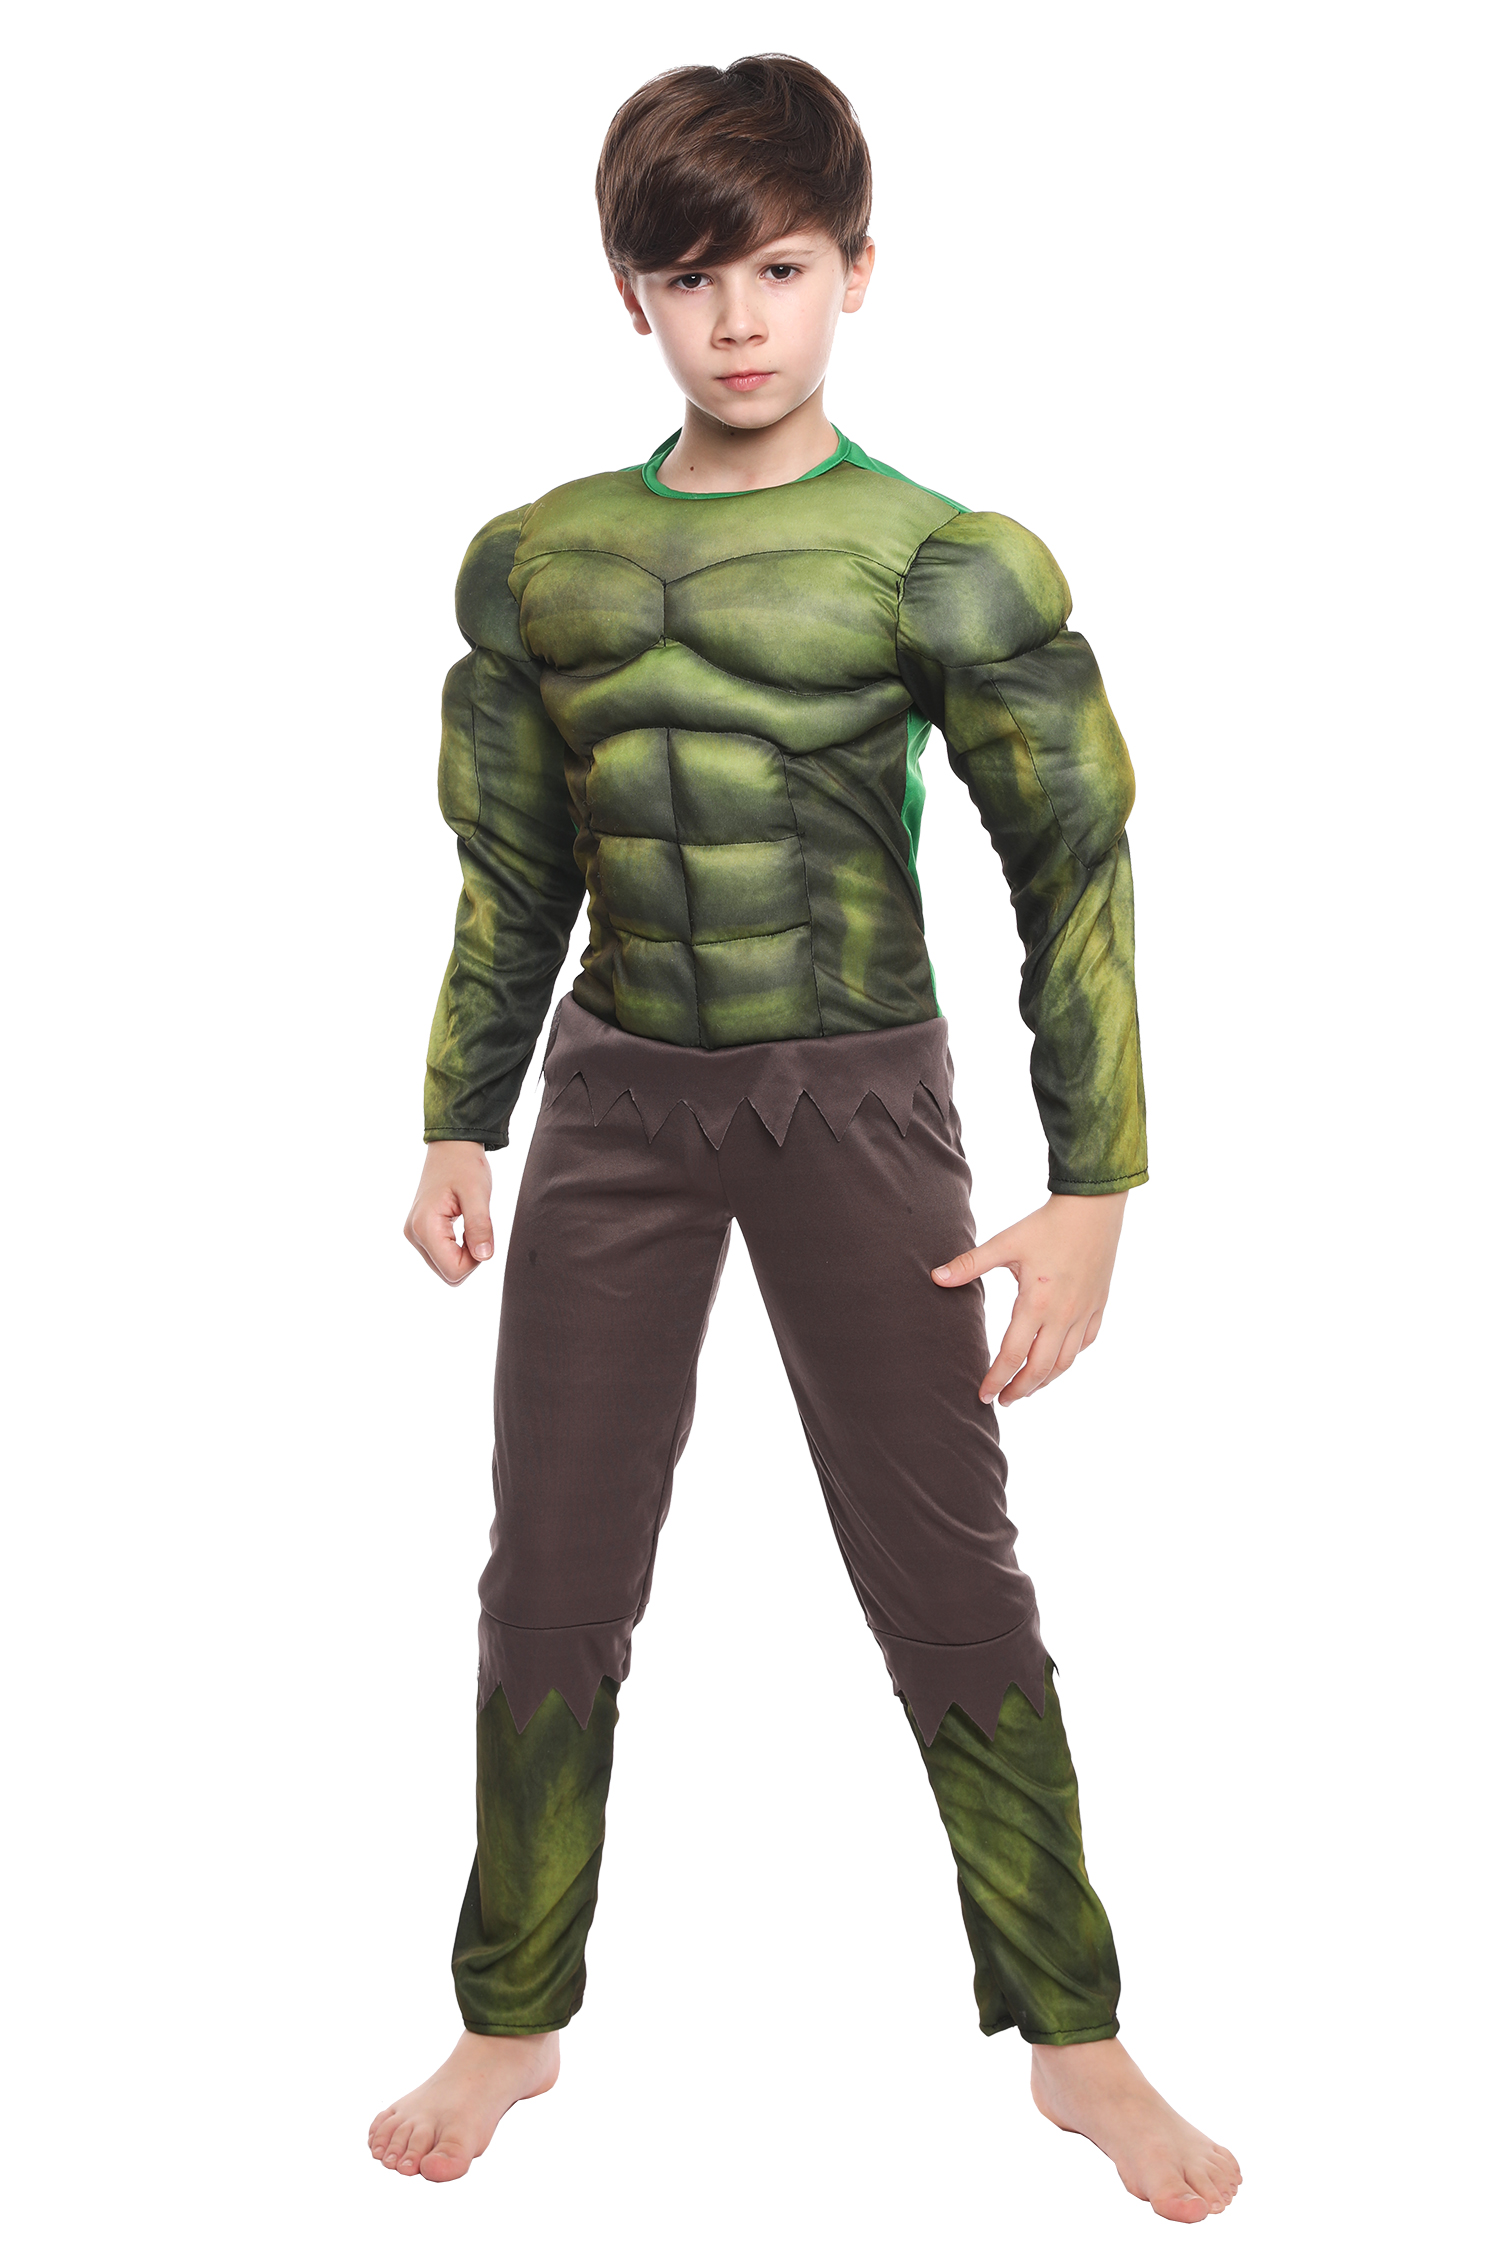 Image 5 - Heroic Hulk Onesies Birthday Party Carnival Clothes Very Cool Gift Avengers Halloween Cosplay Costume For KidsBoys Costumes   -